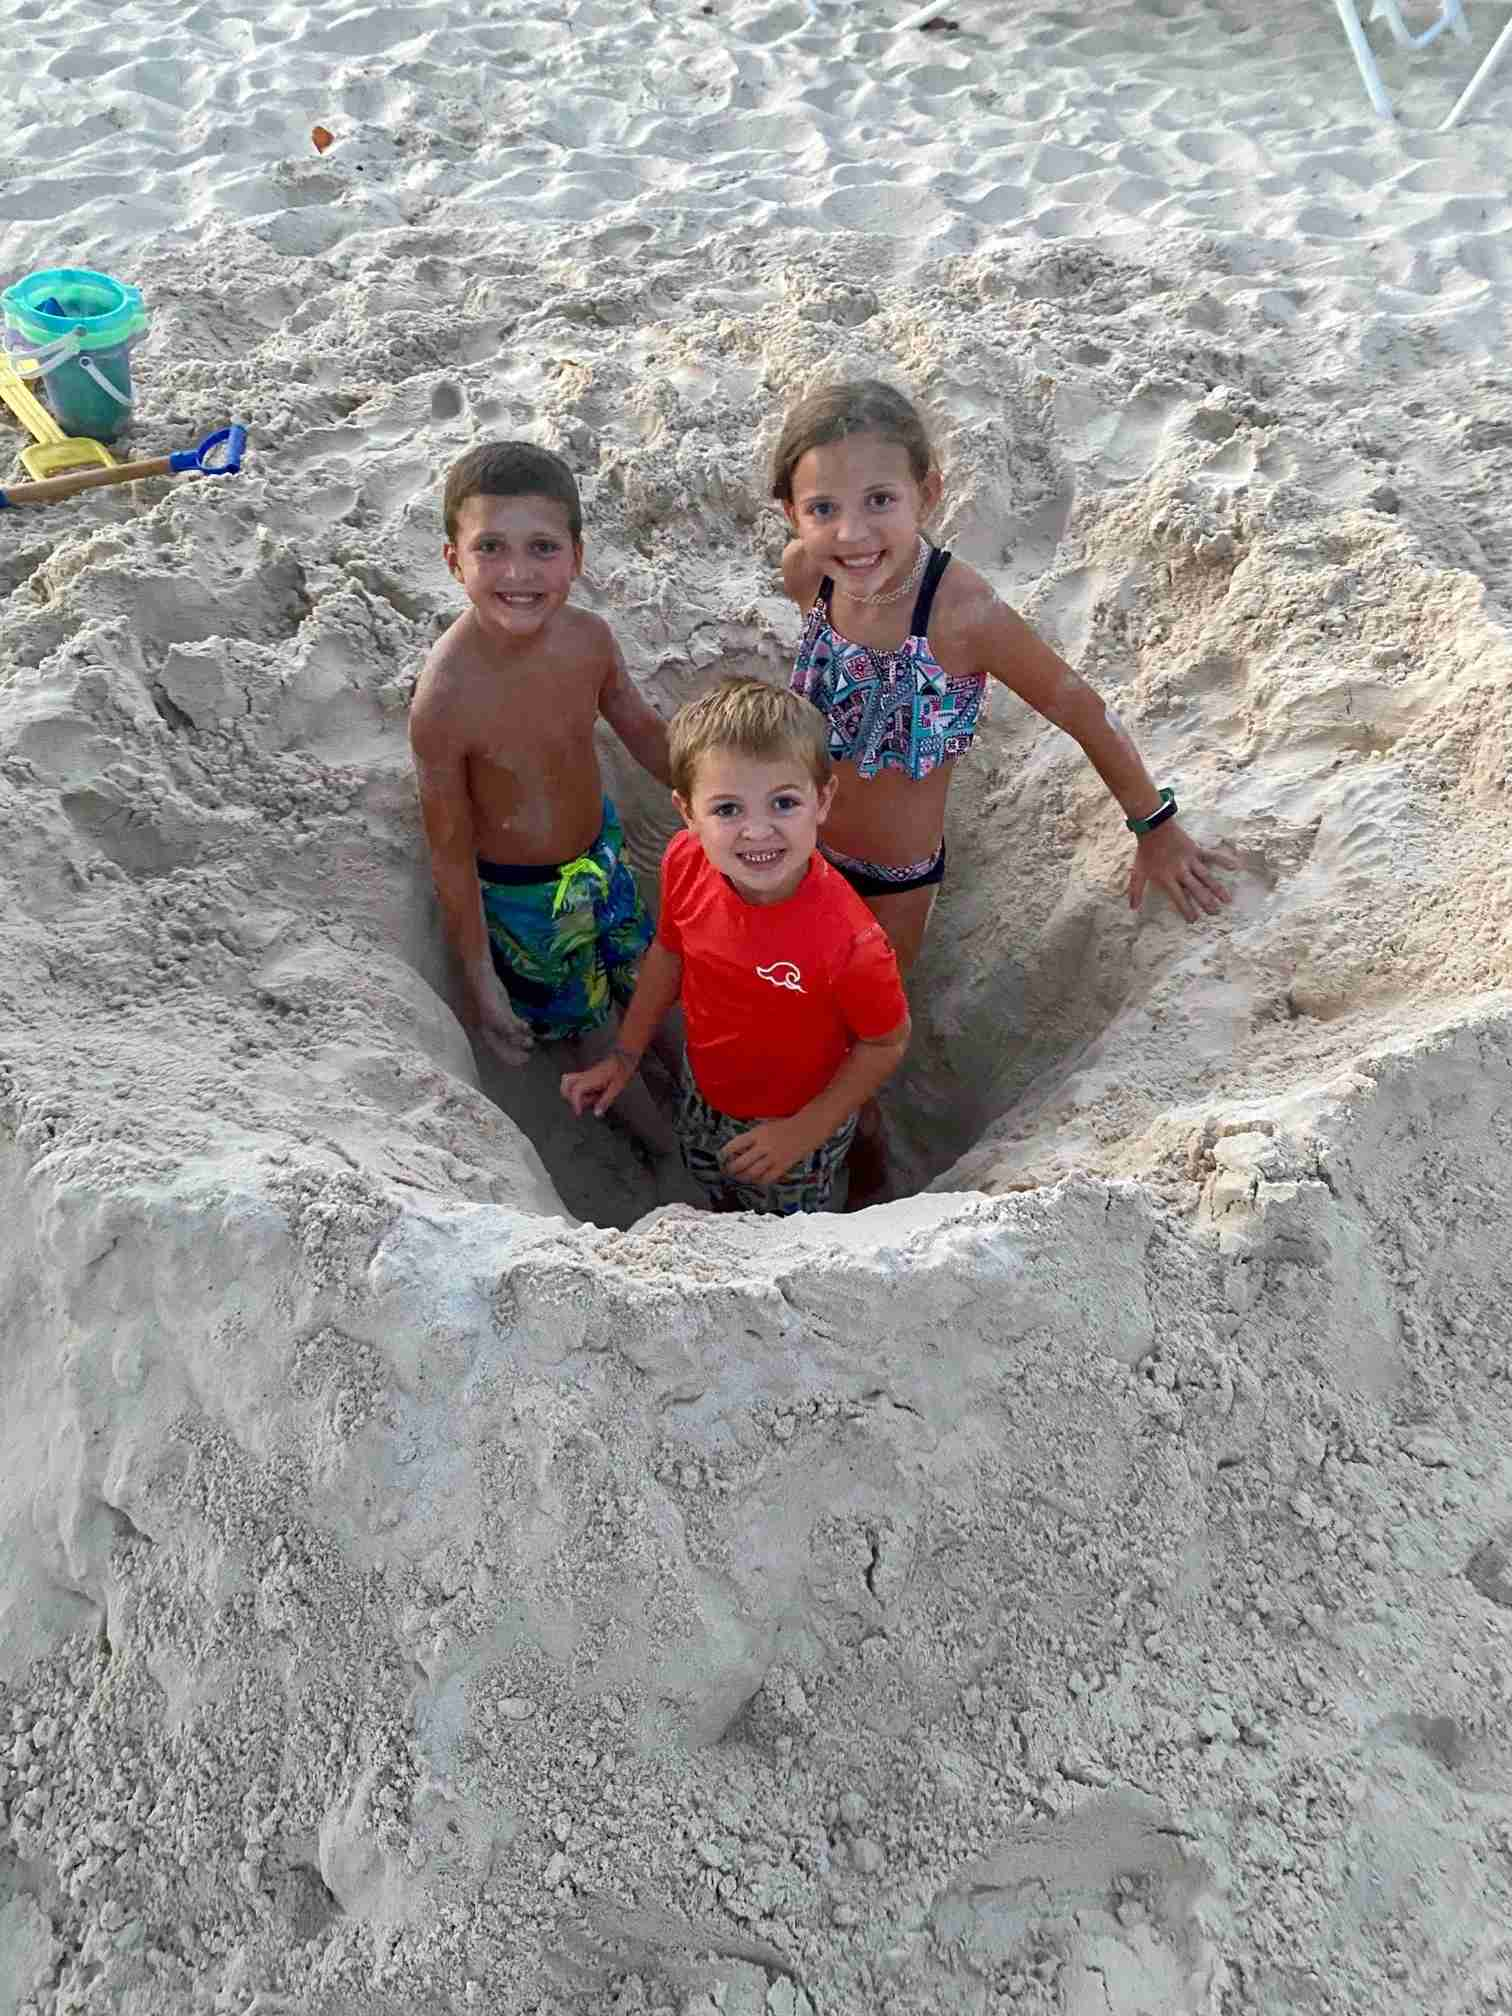 The Kaplan kids at the beach in Aruba.